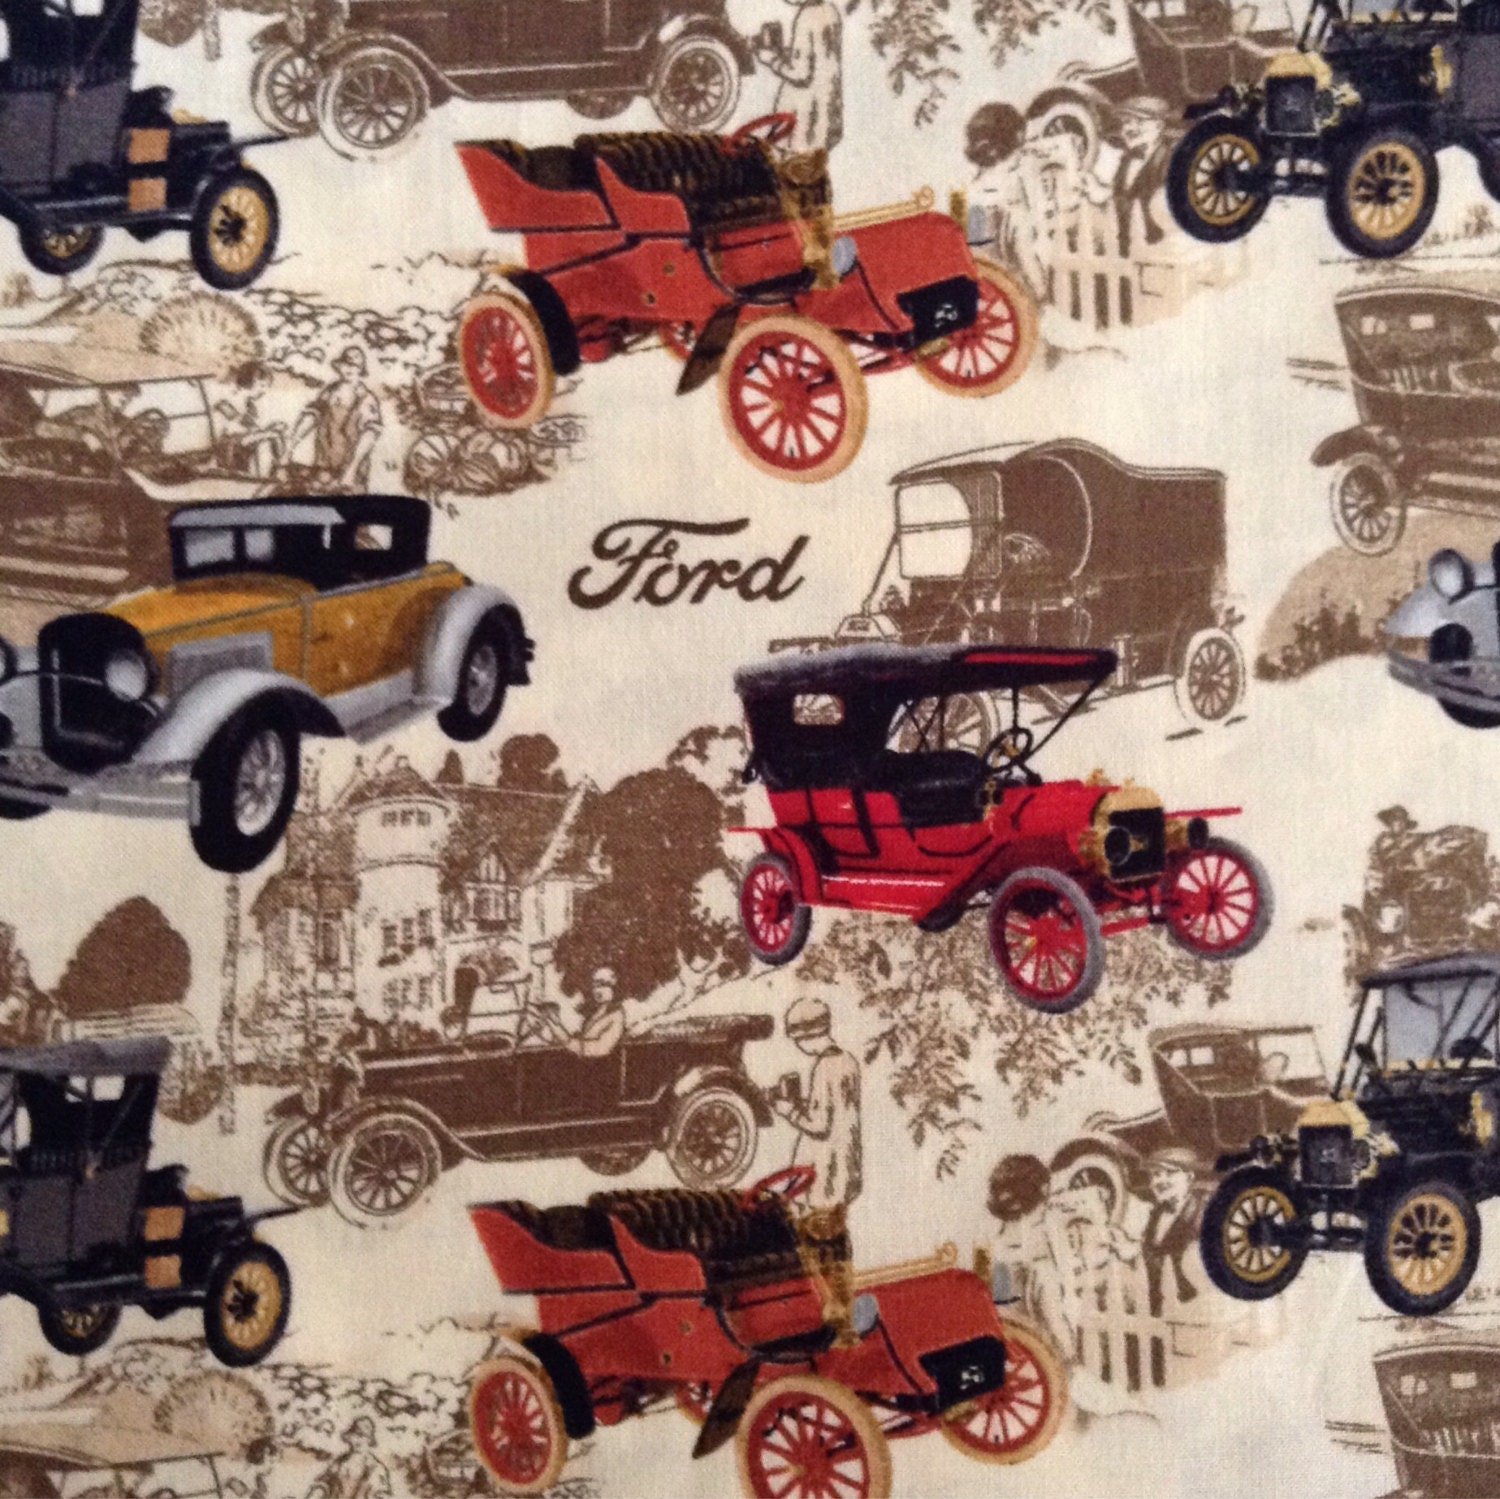 One Half Yard of Fabric Material - Ford Vintage Cars from ...